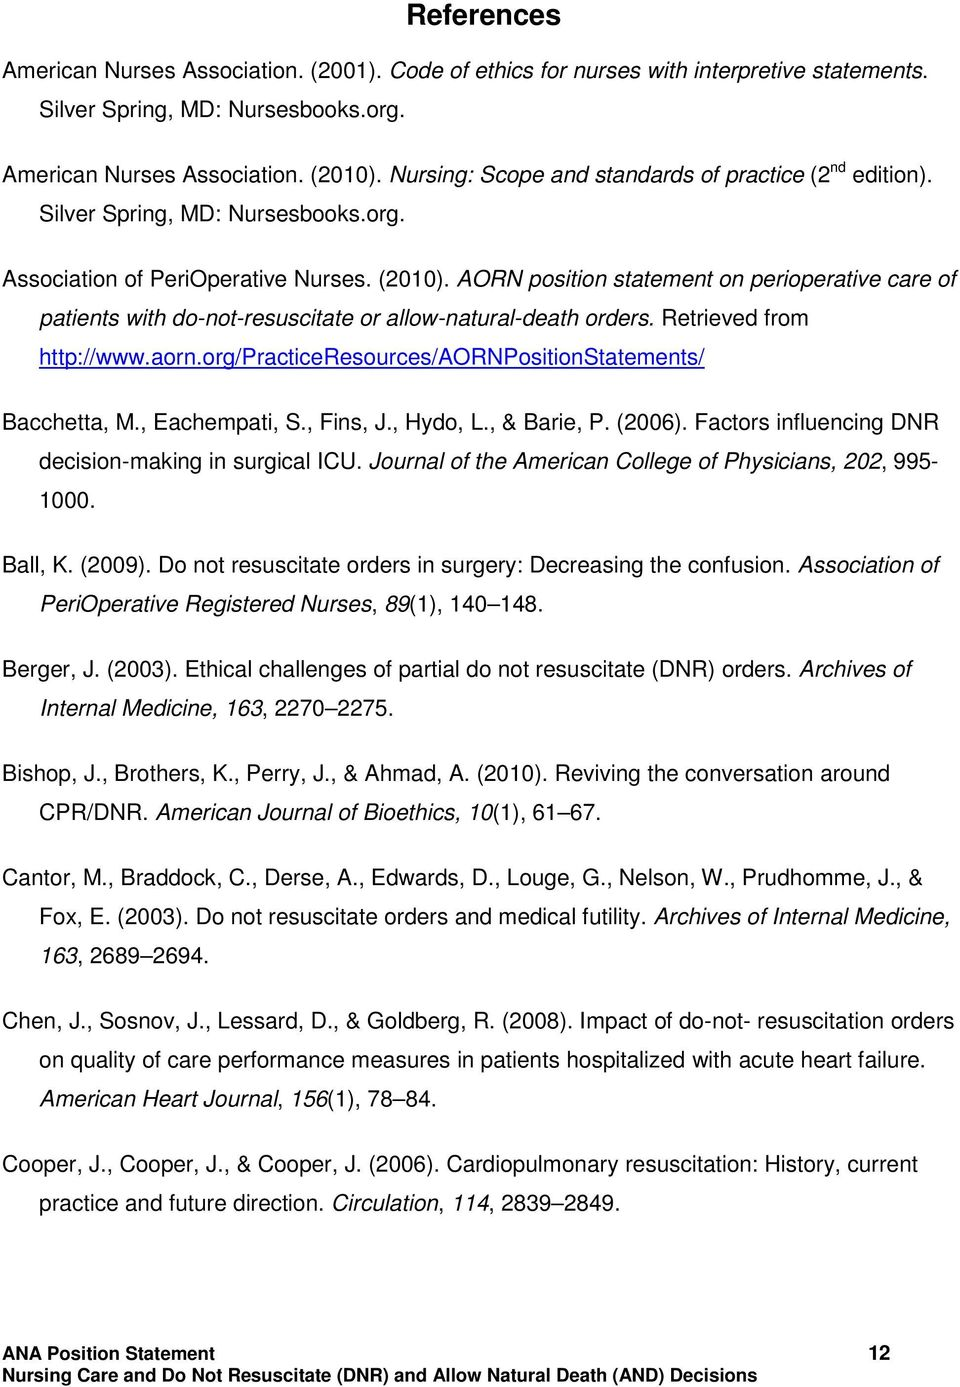 AORN position statement on perioperative care of patients with do-not-resuscitate or allow-natural-death orders. Retrieved from http://www.aorn.